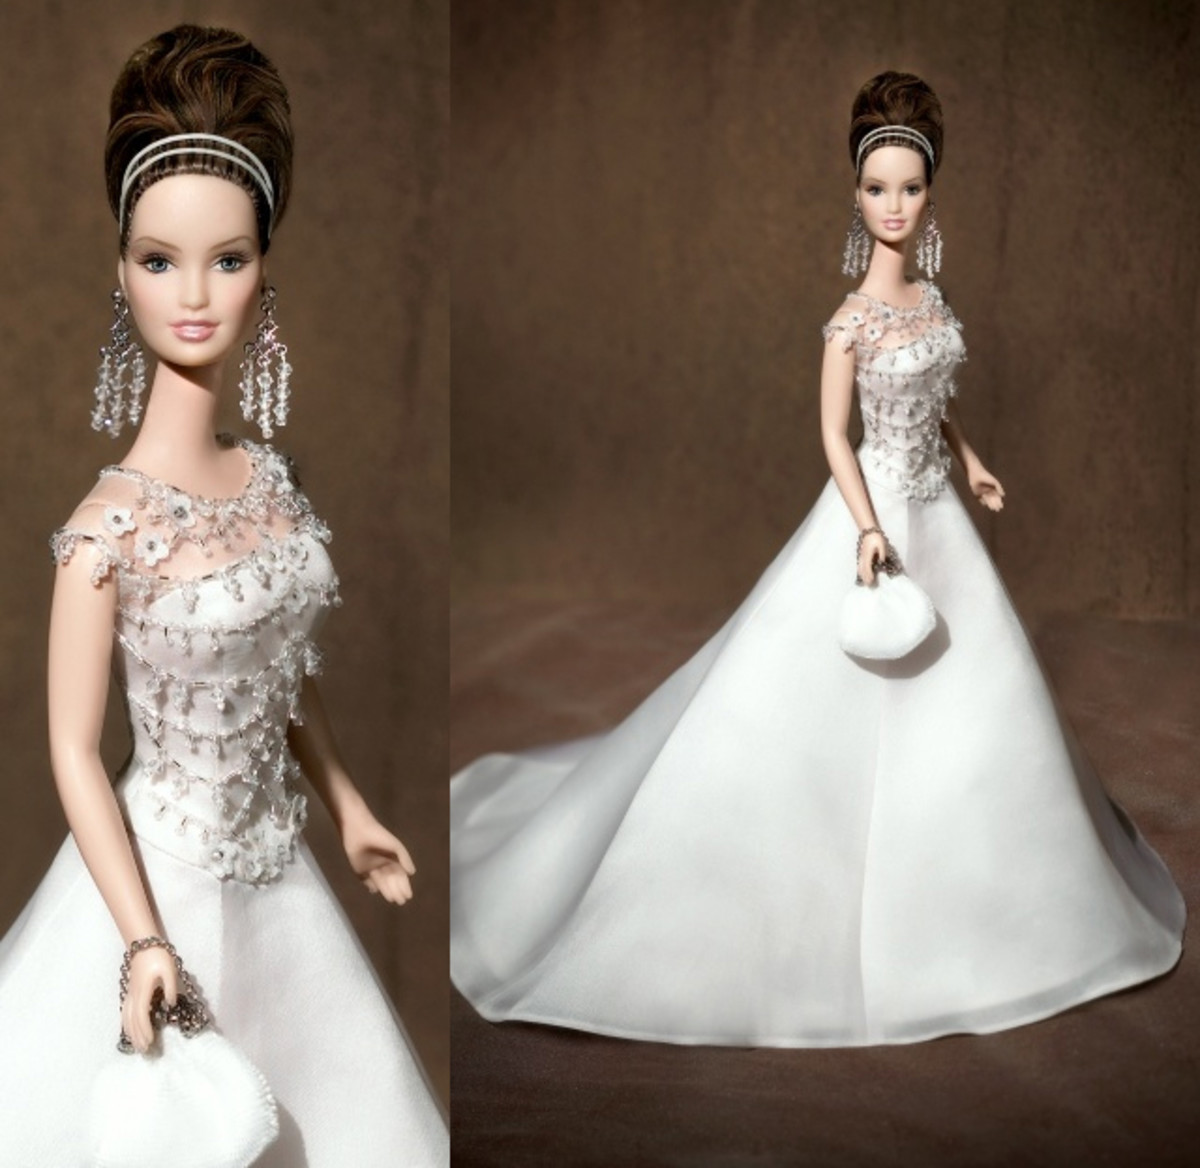 elegant Barbie doll in white evening wedding dress